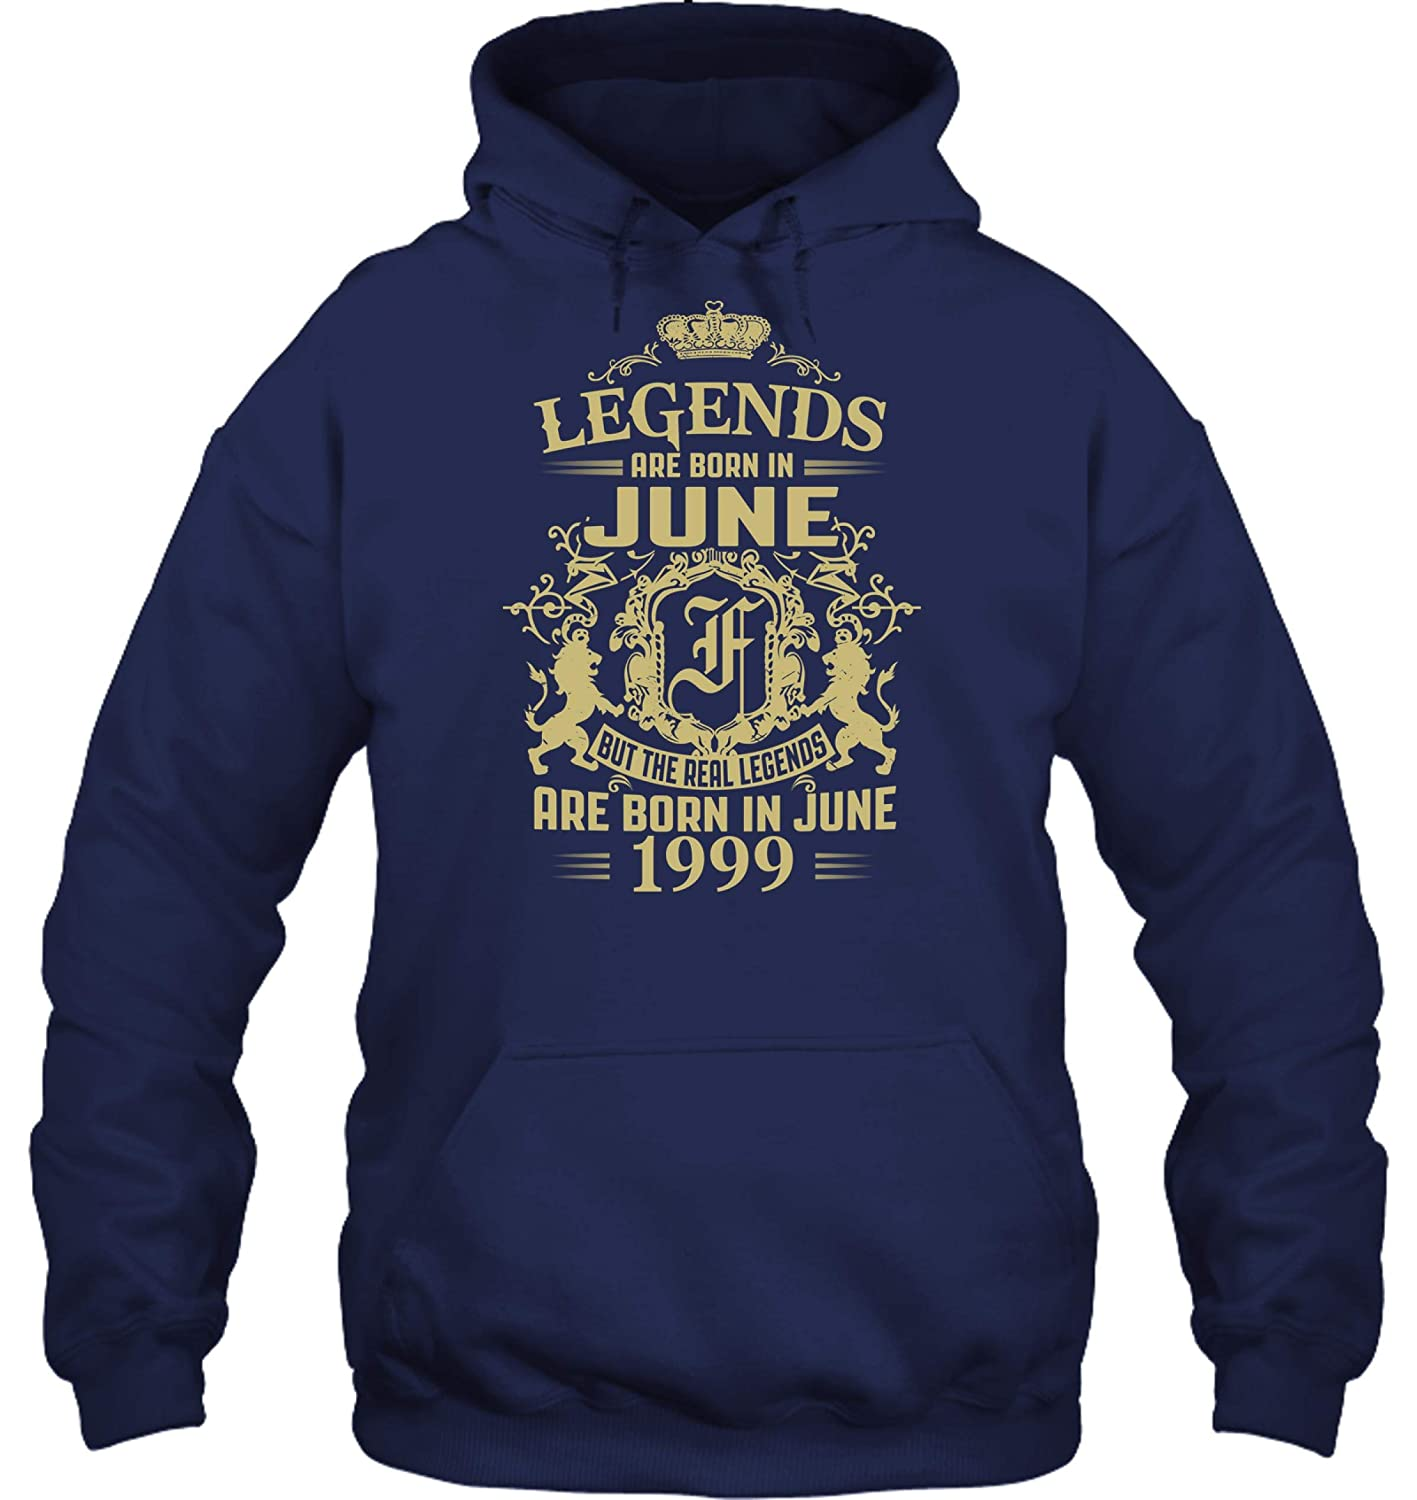 0421 Kings Legends are Born in June 1999